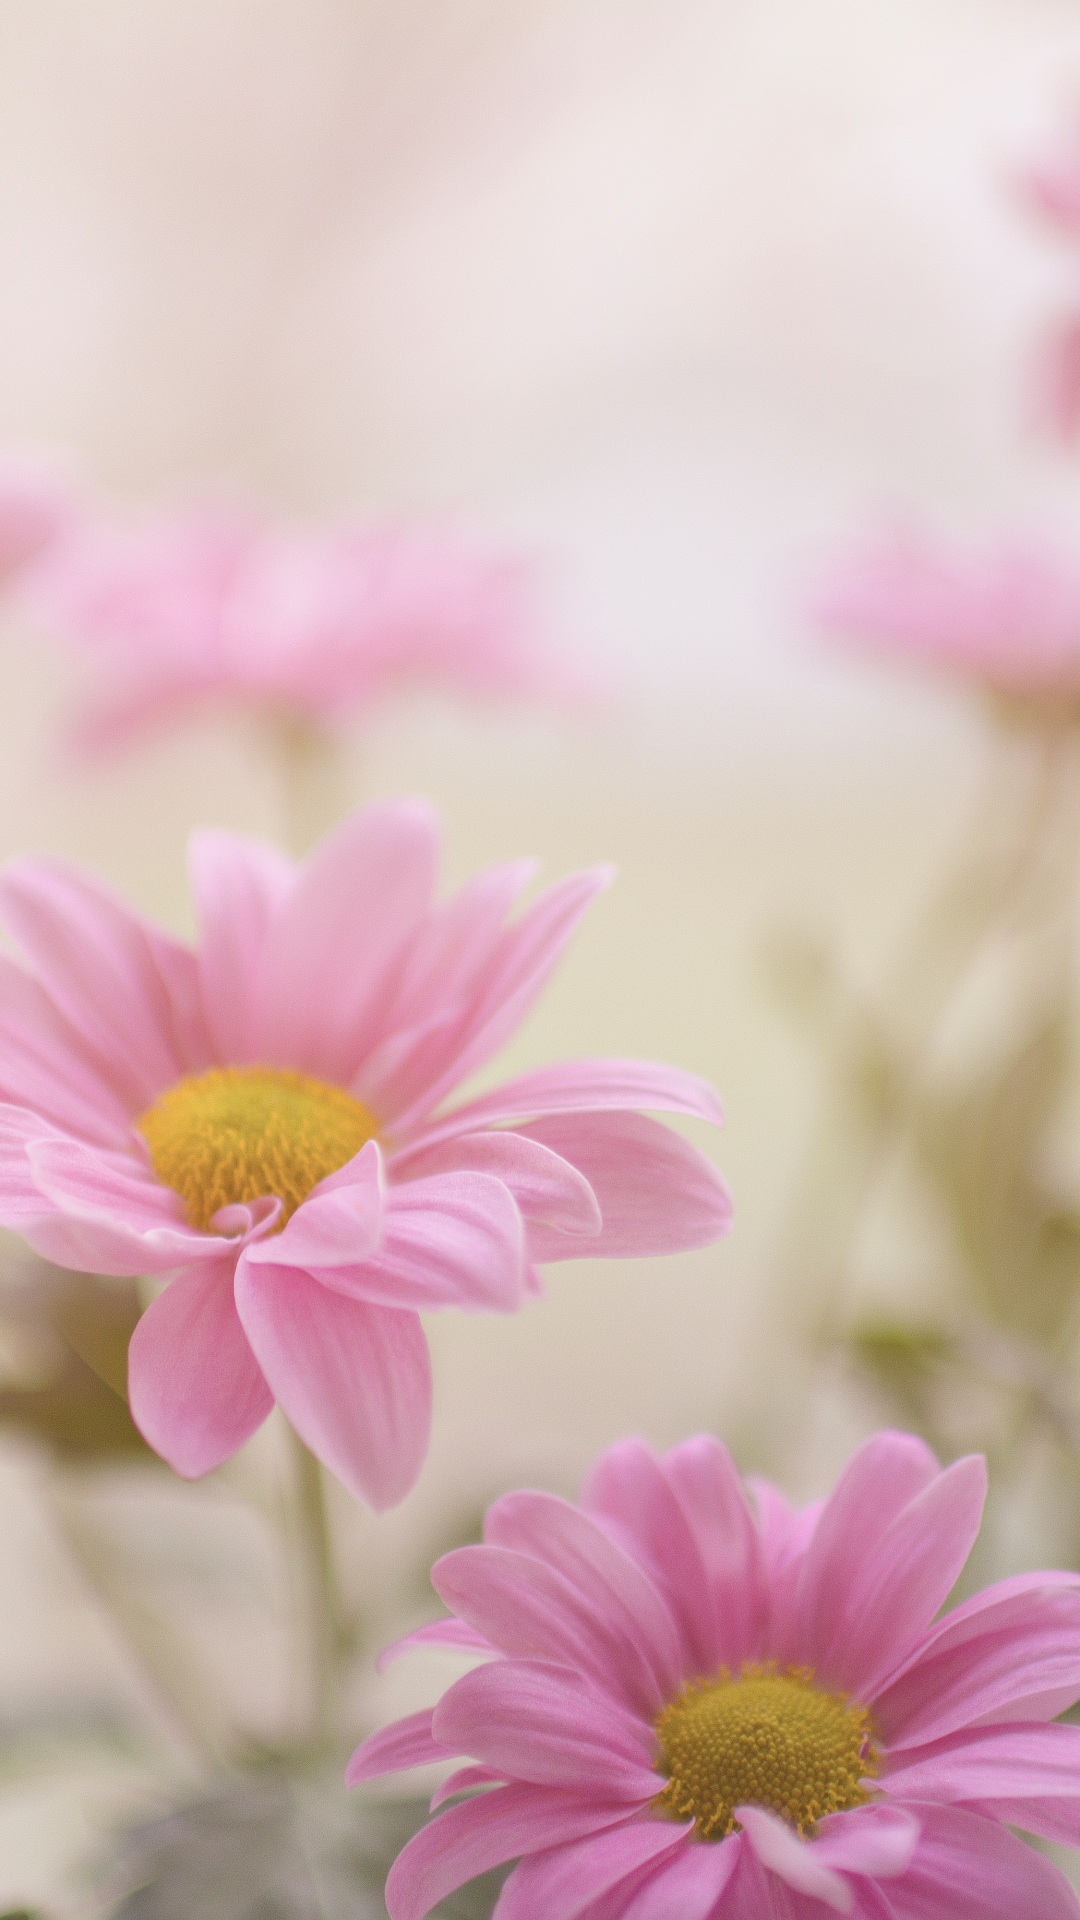 Pink And Daisy iPhone Wallpaper